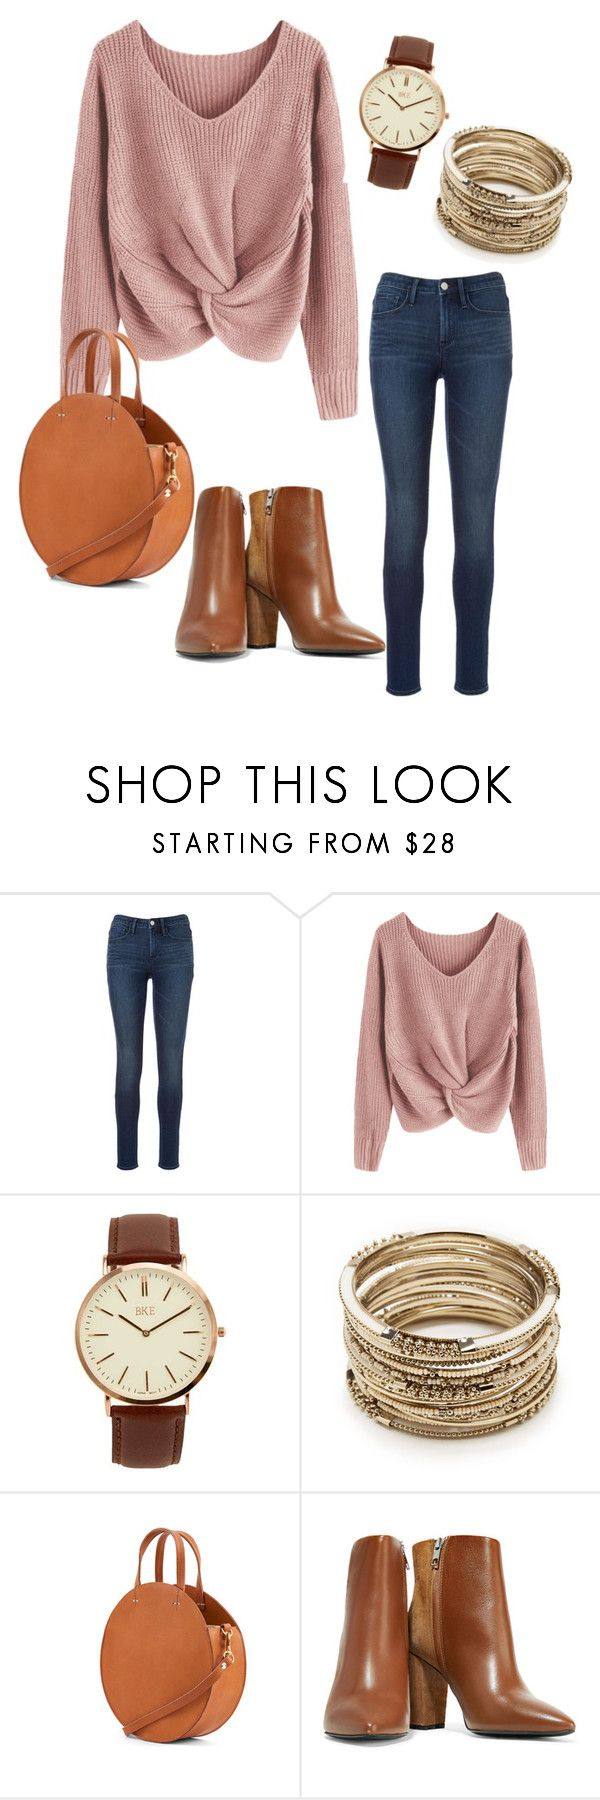 Casual everyday look by theodora-kontiza on Polyvore featuring IRO, Sole  Society and BKE